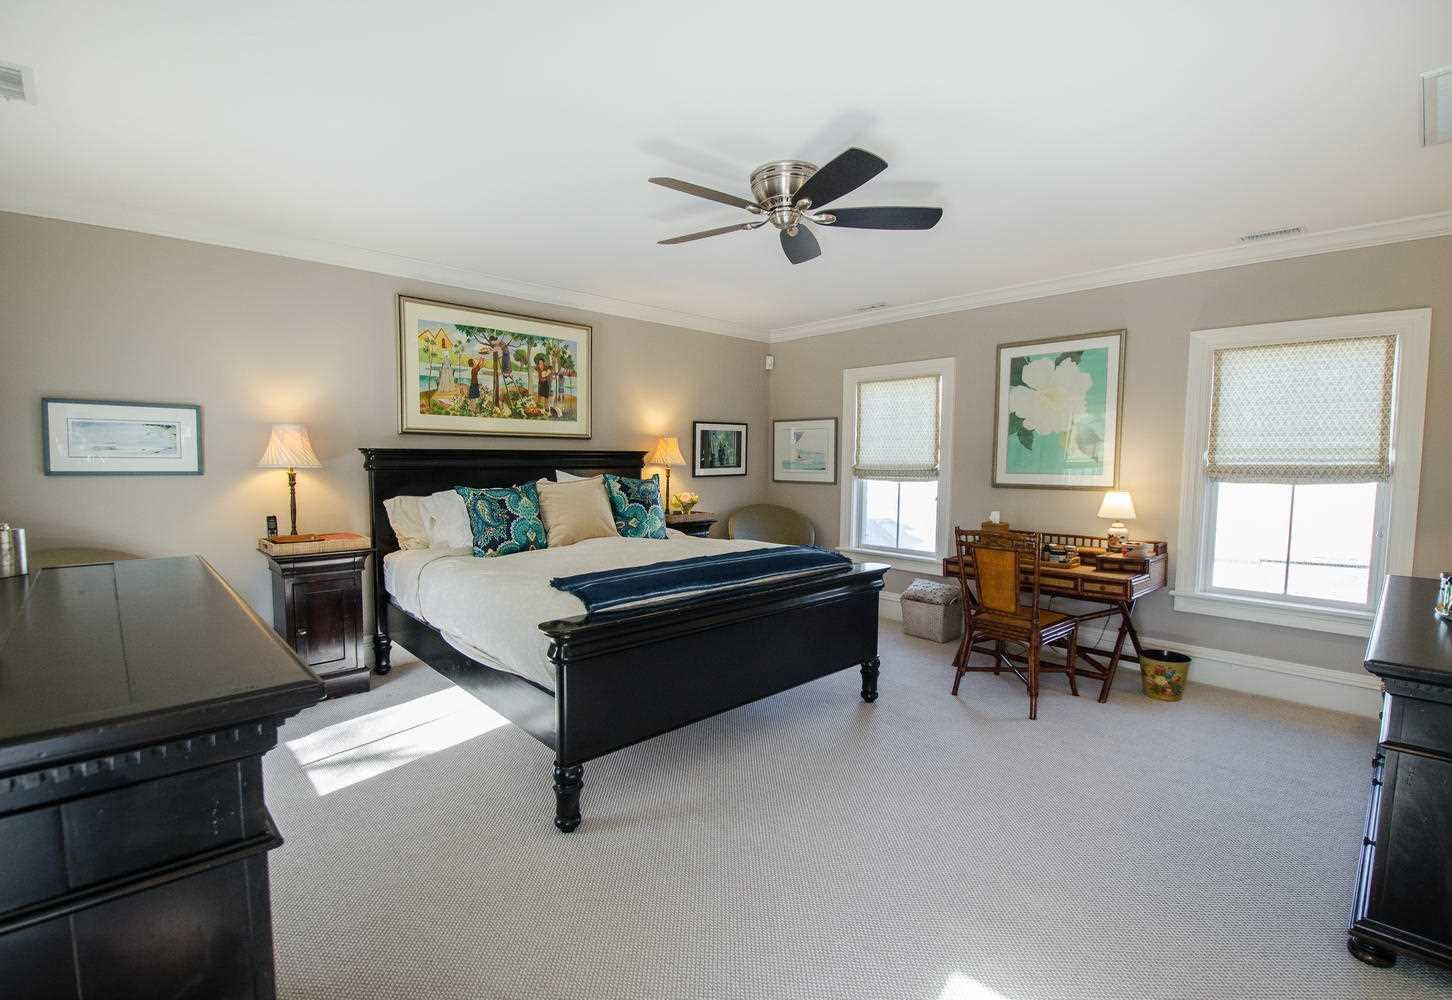 Additional photo for property listing at 9 MCNEIL 9 MCNEIL Gallatin, New York 12567 United States